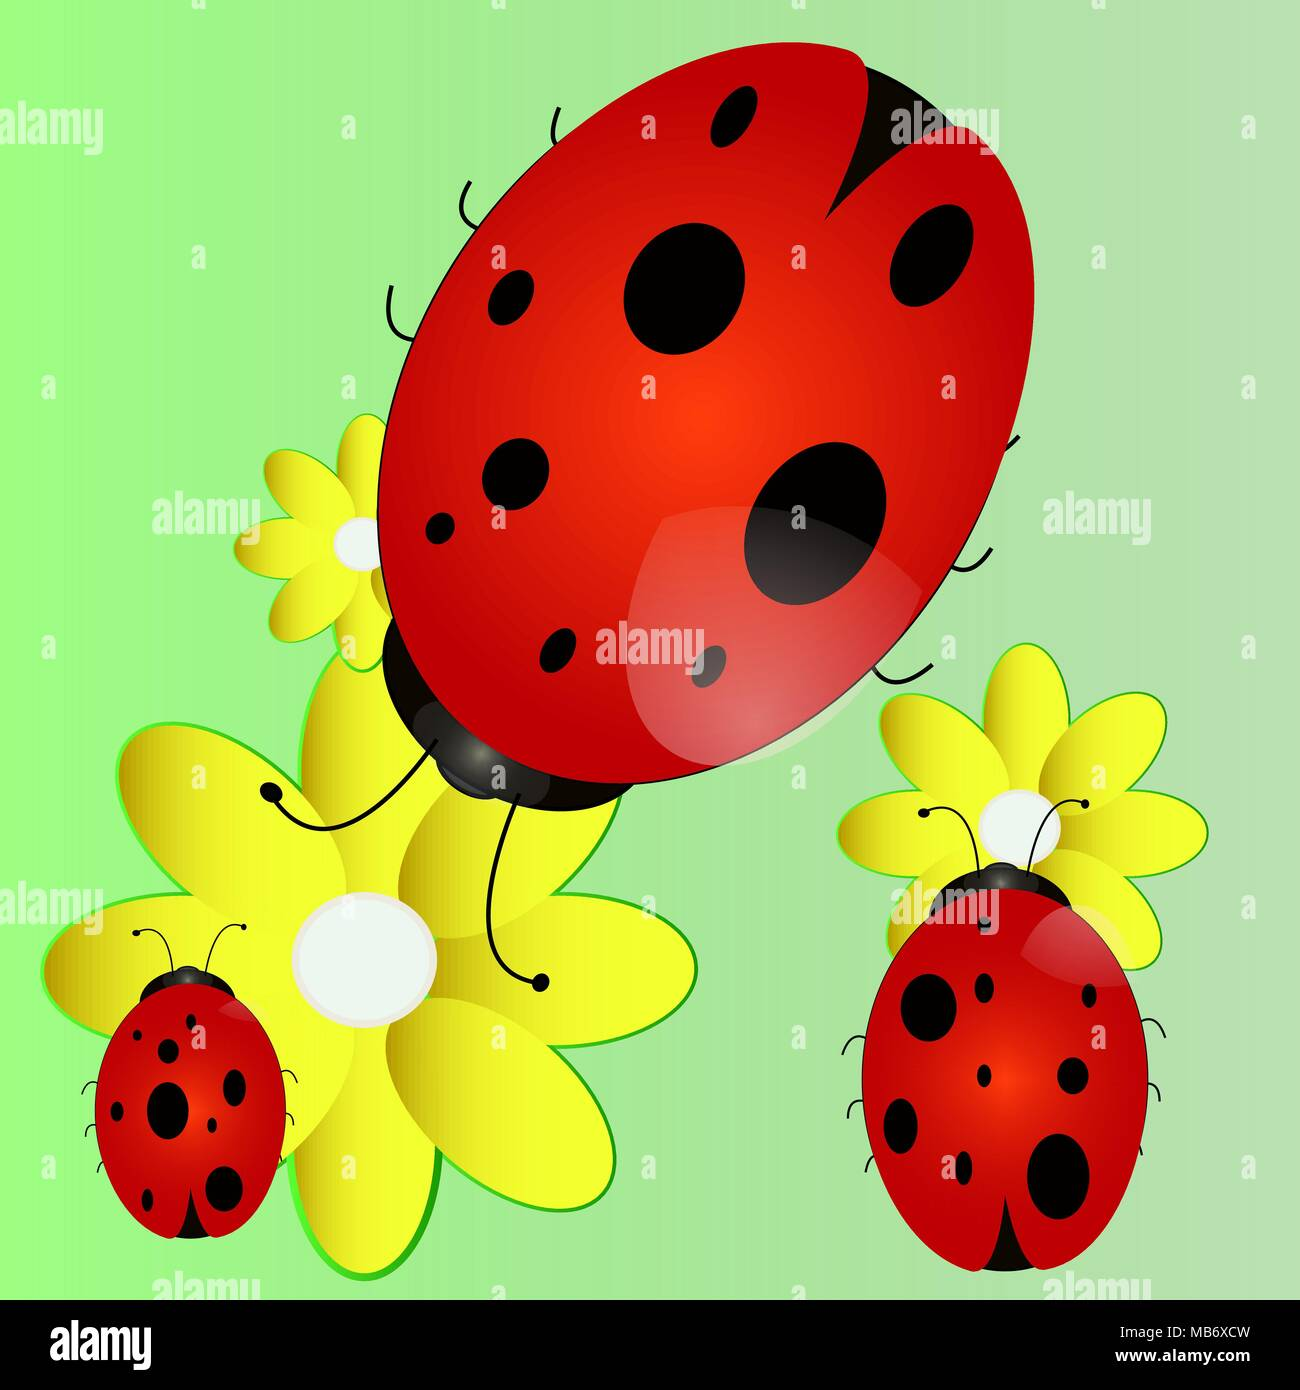 A Cartoon Ladybug a ladybird, a cartoon character, an insect stock vector art